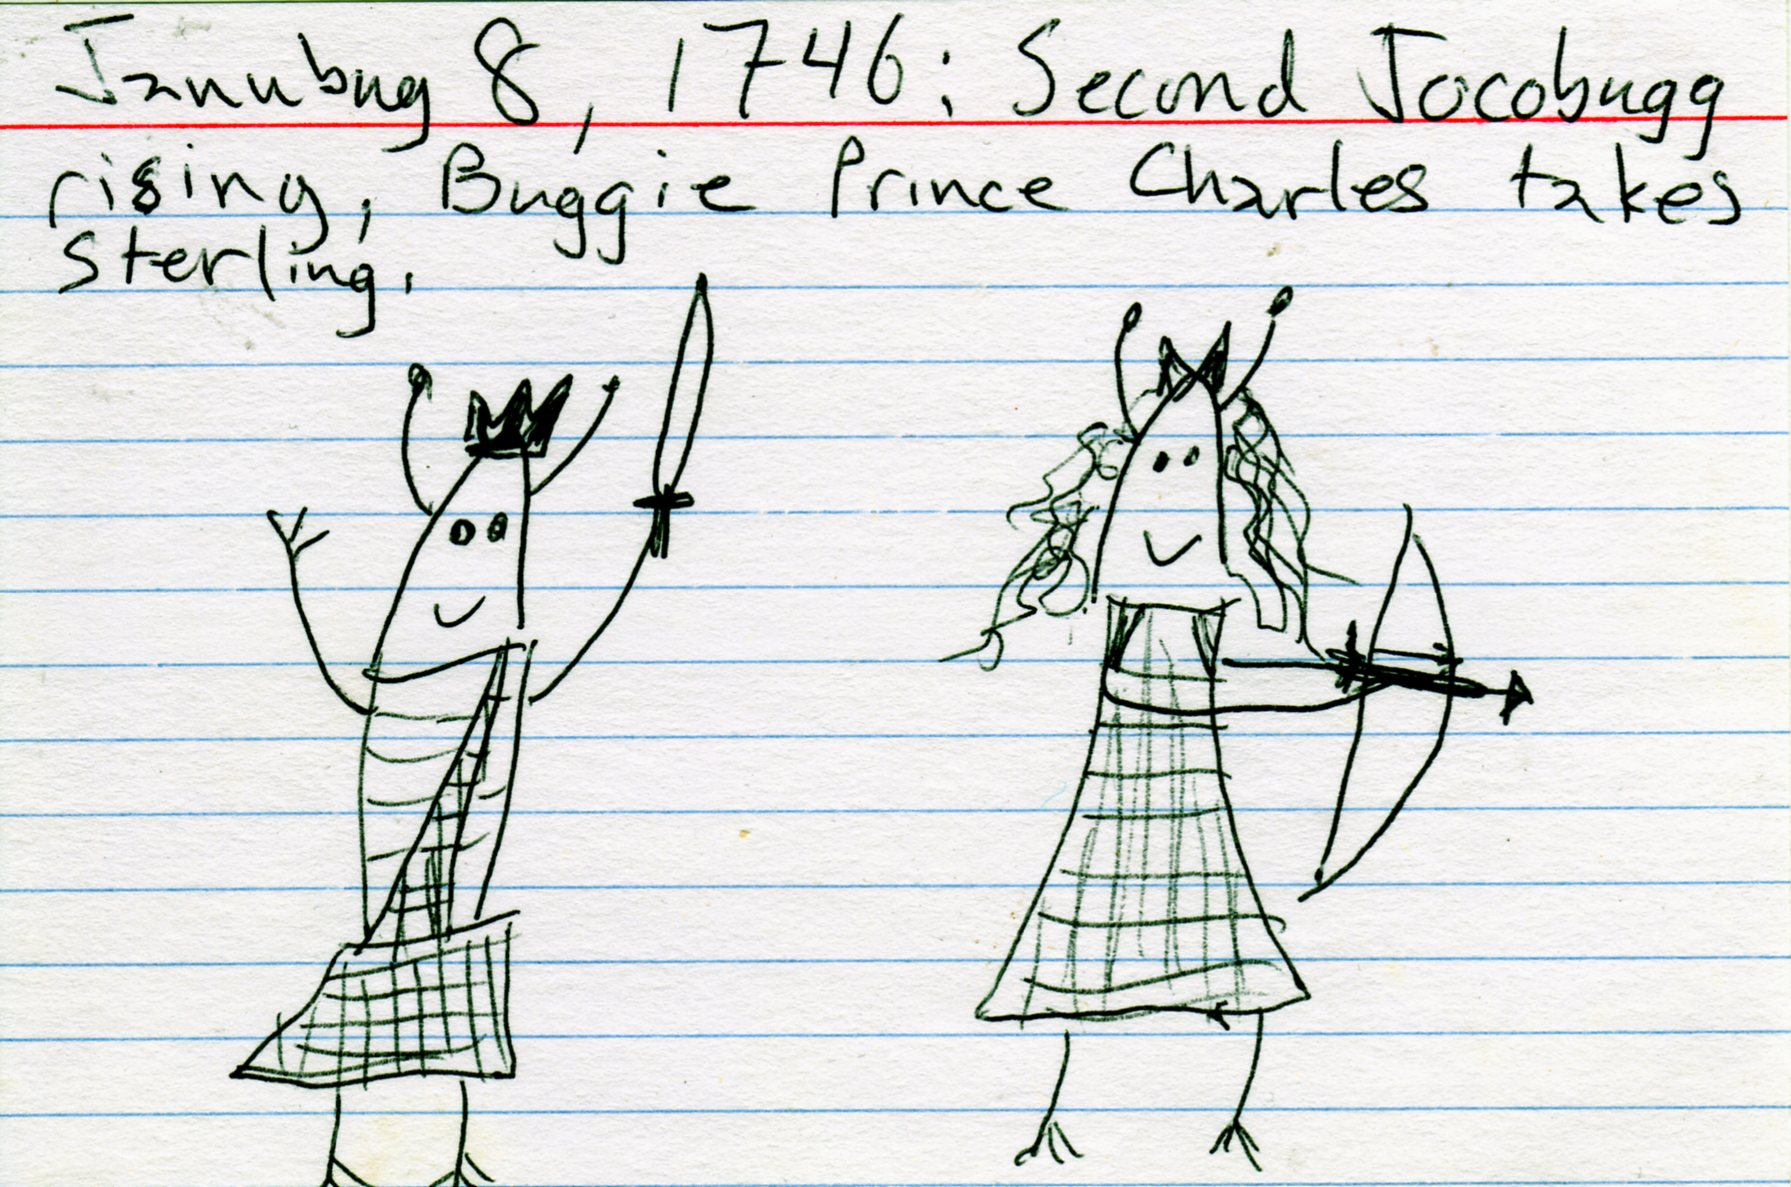 buggie prince charlie [click to embiggen]